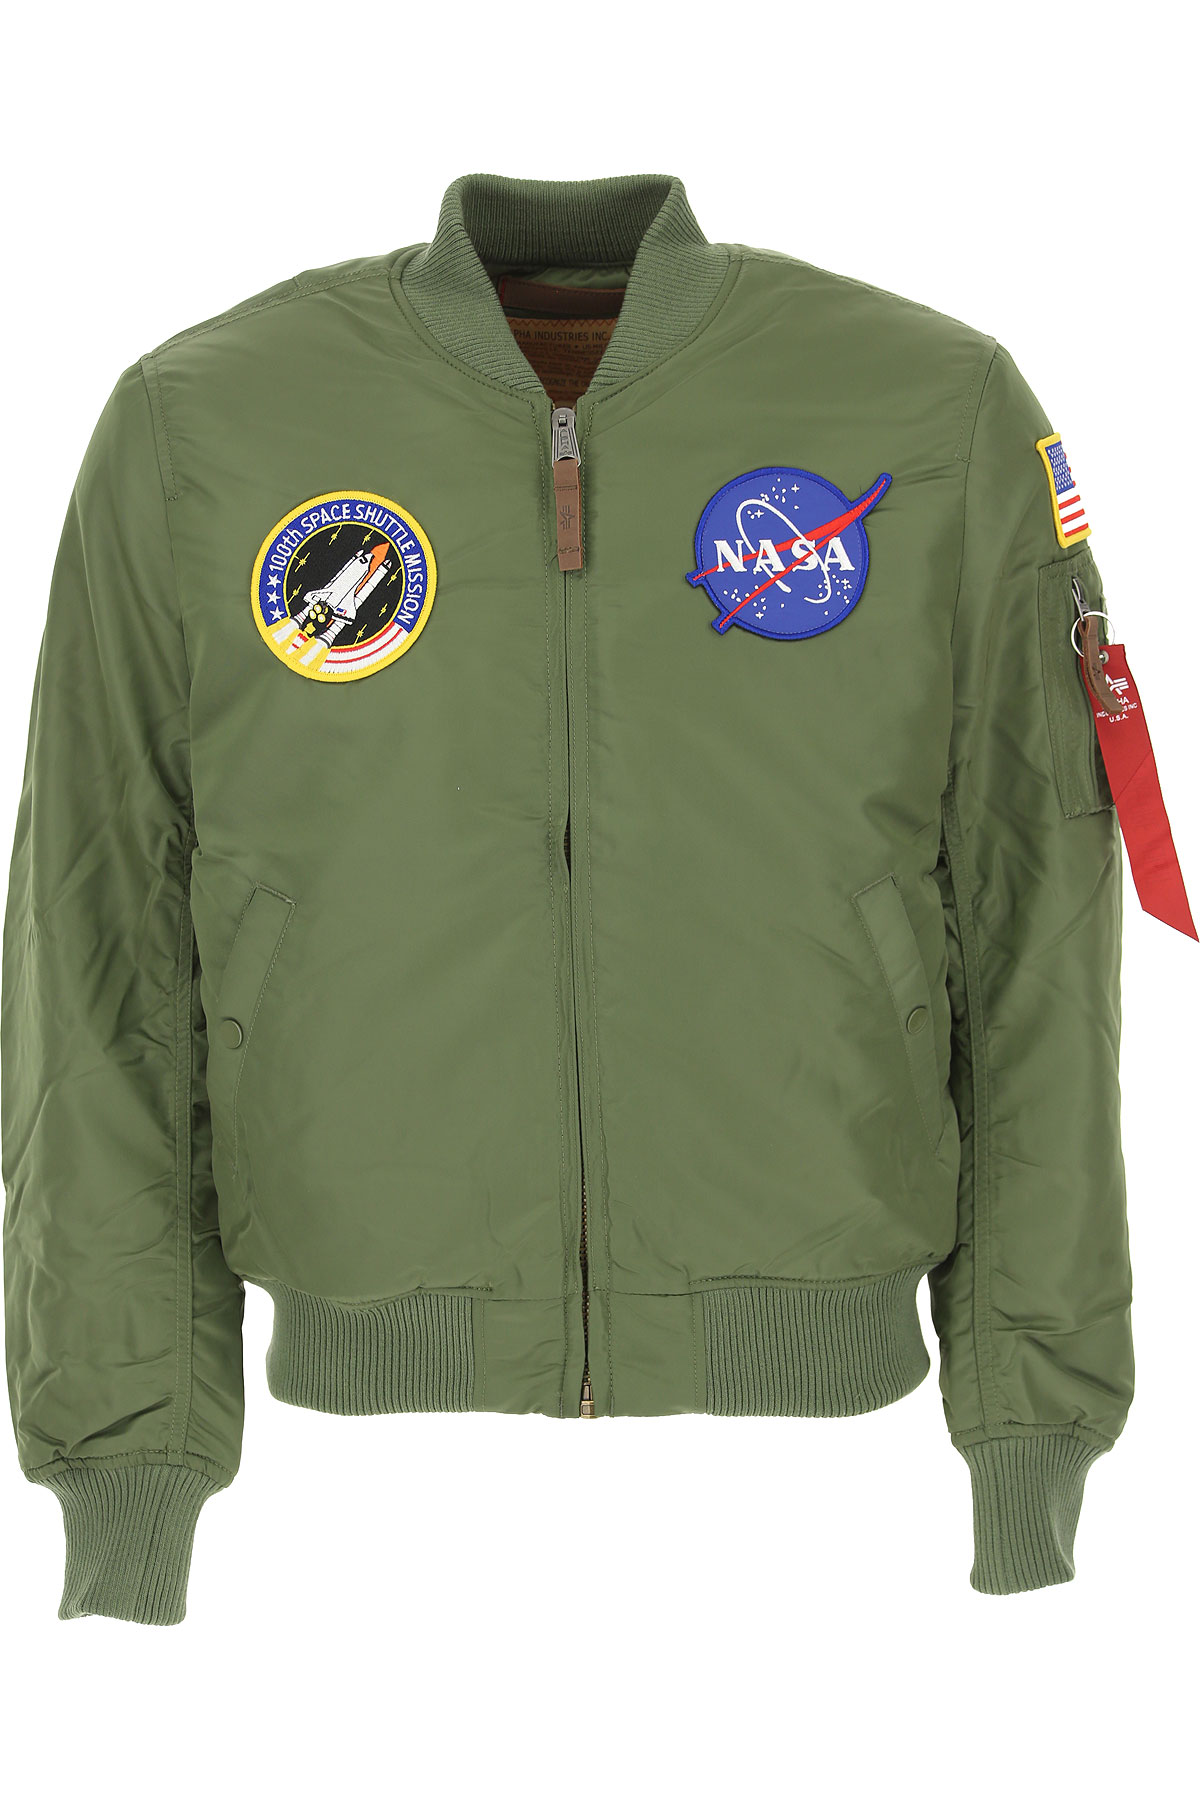 Image of Alpha Industries Jacket for Men, Military Green, polyester, 2017, L M S XL